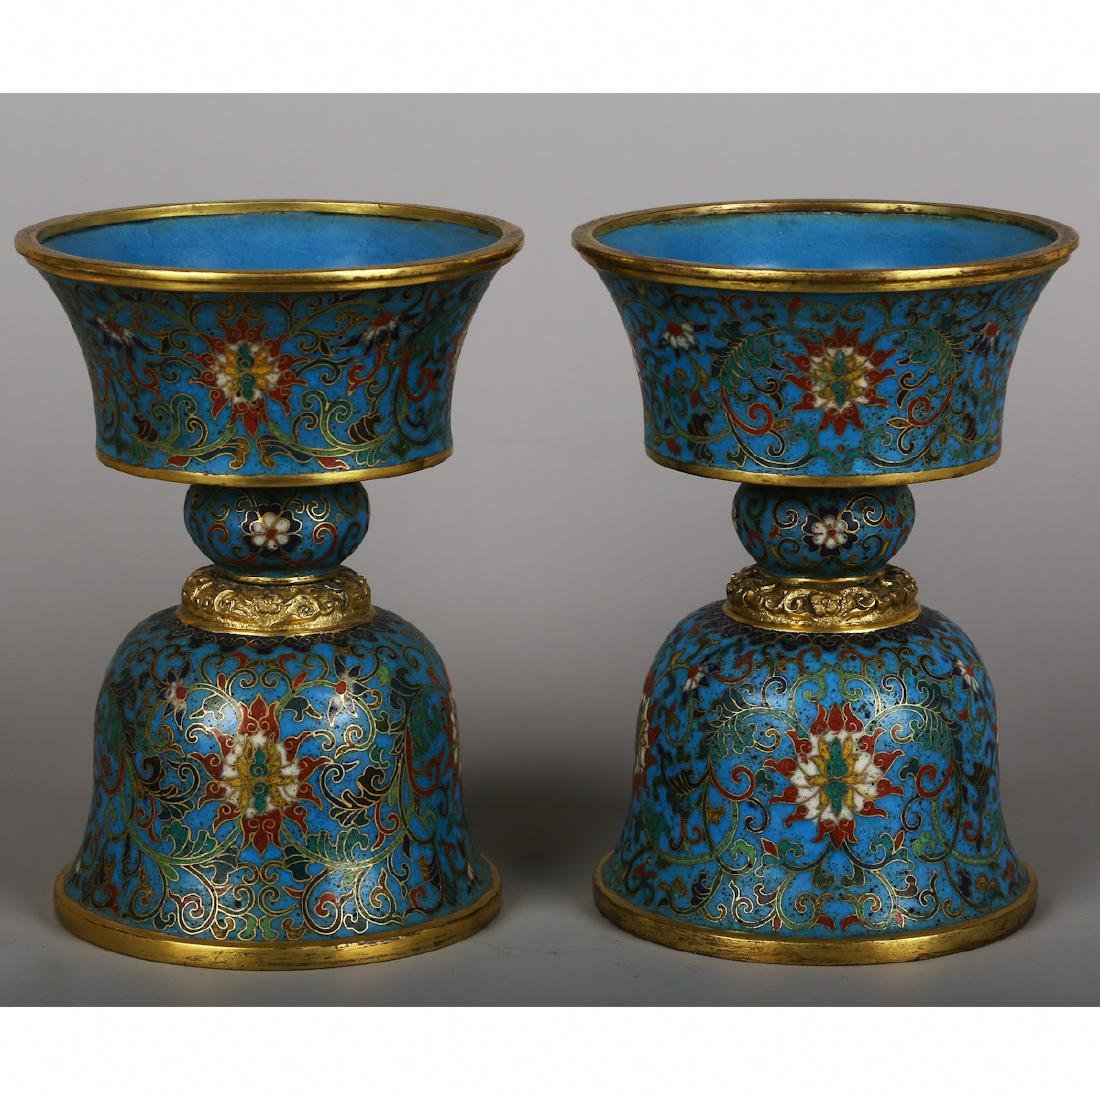 CHINESE PAIR OF CLOISONNE CANDLE STANDS